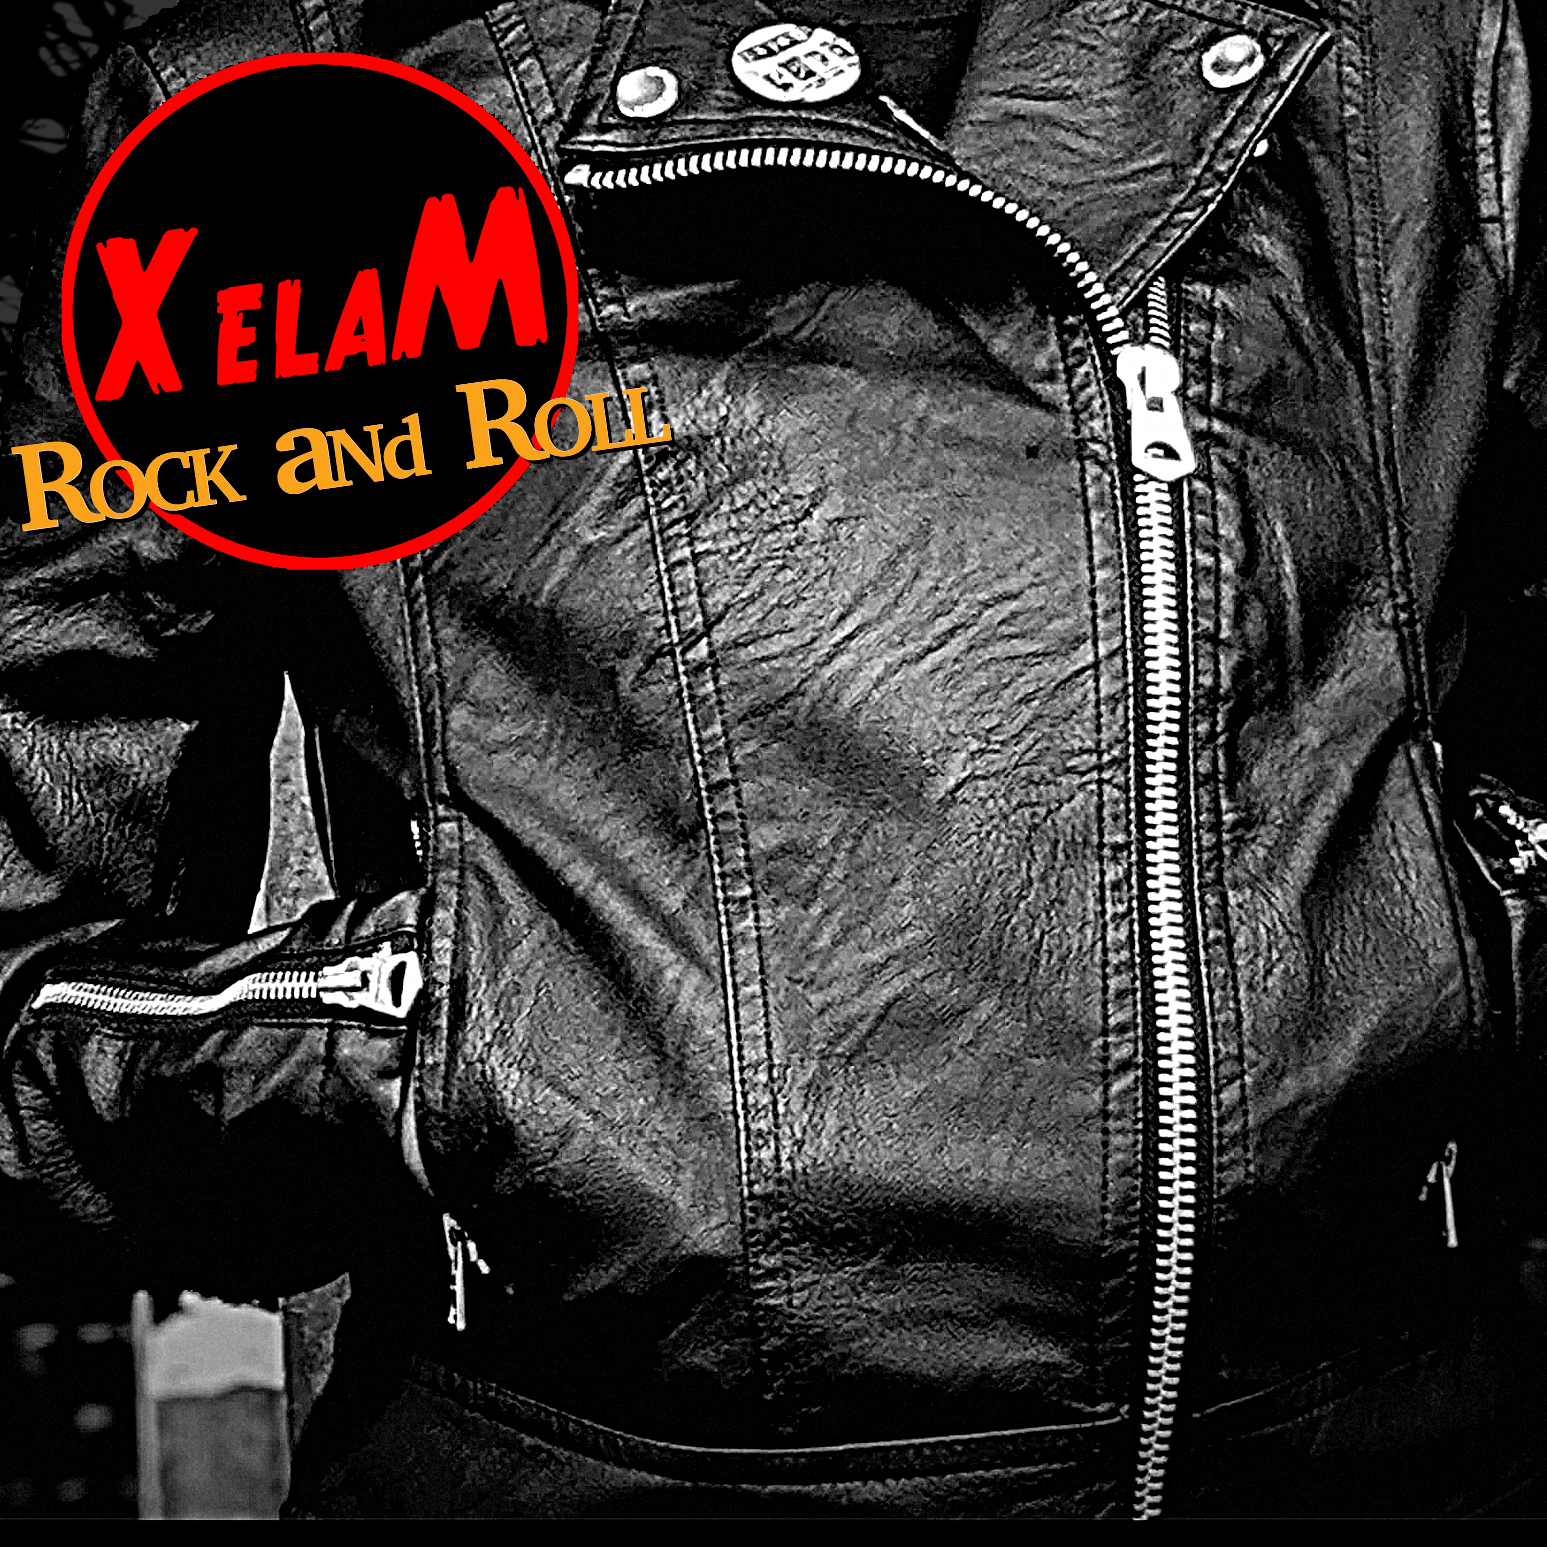 XelaM - Rock and Roll